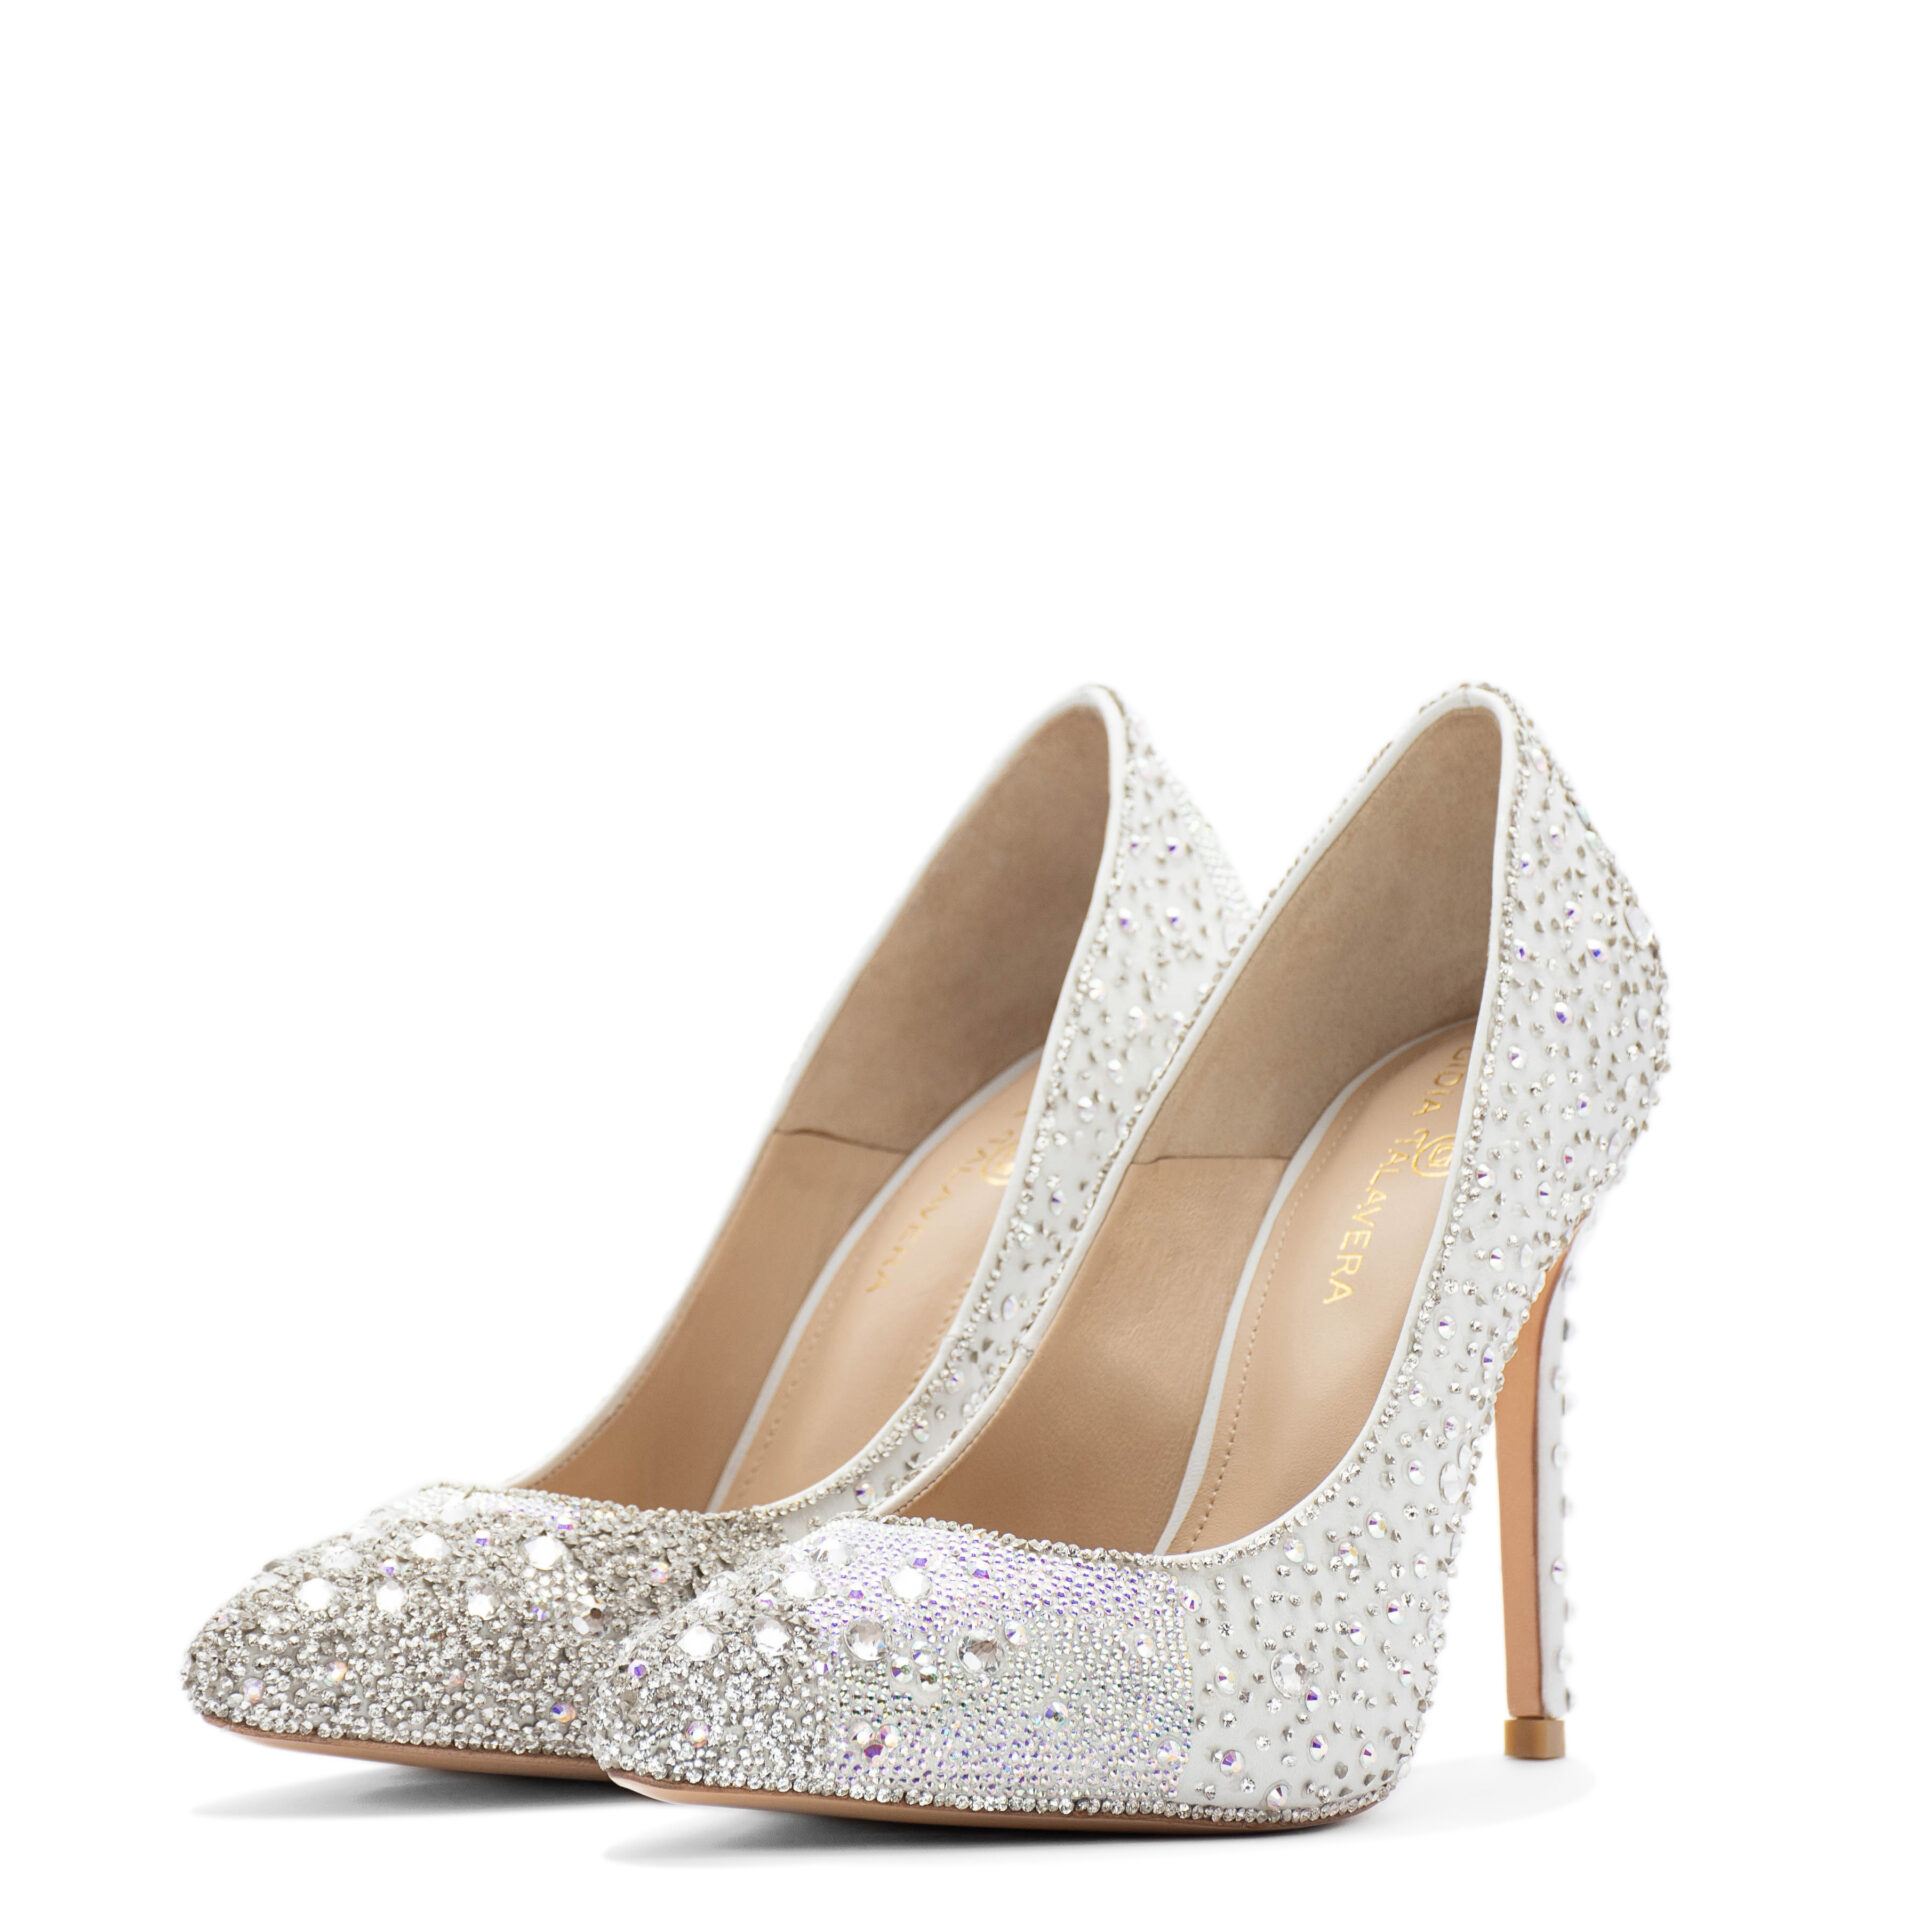 Bride pointed toe shoes with crystals